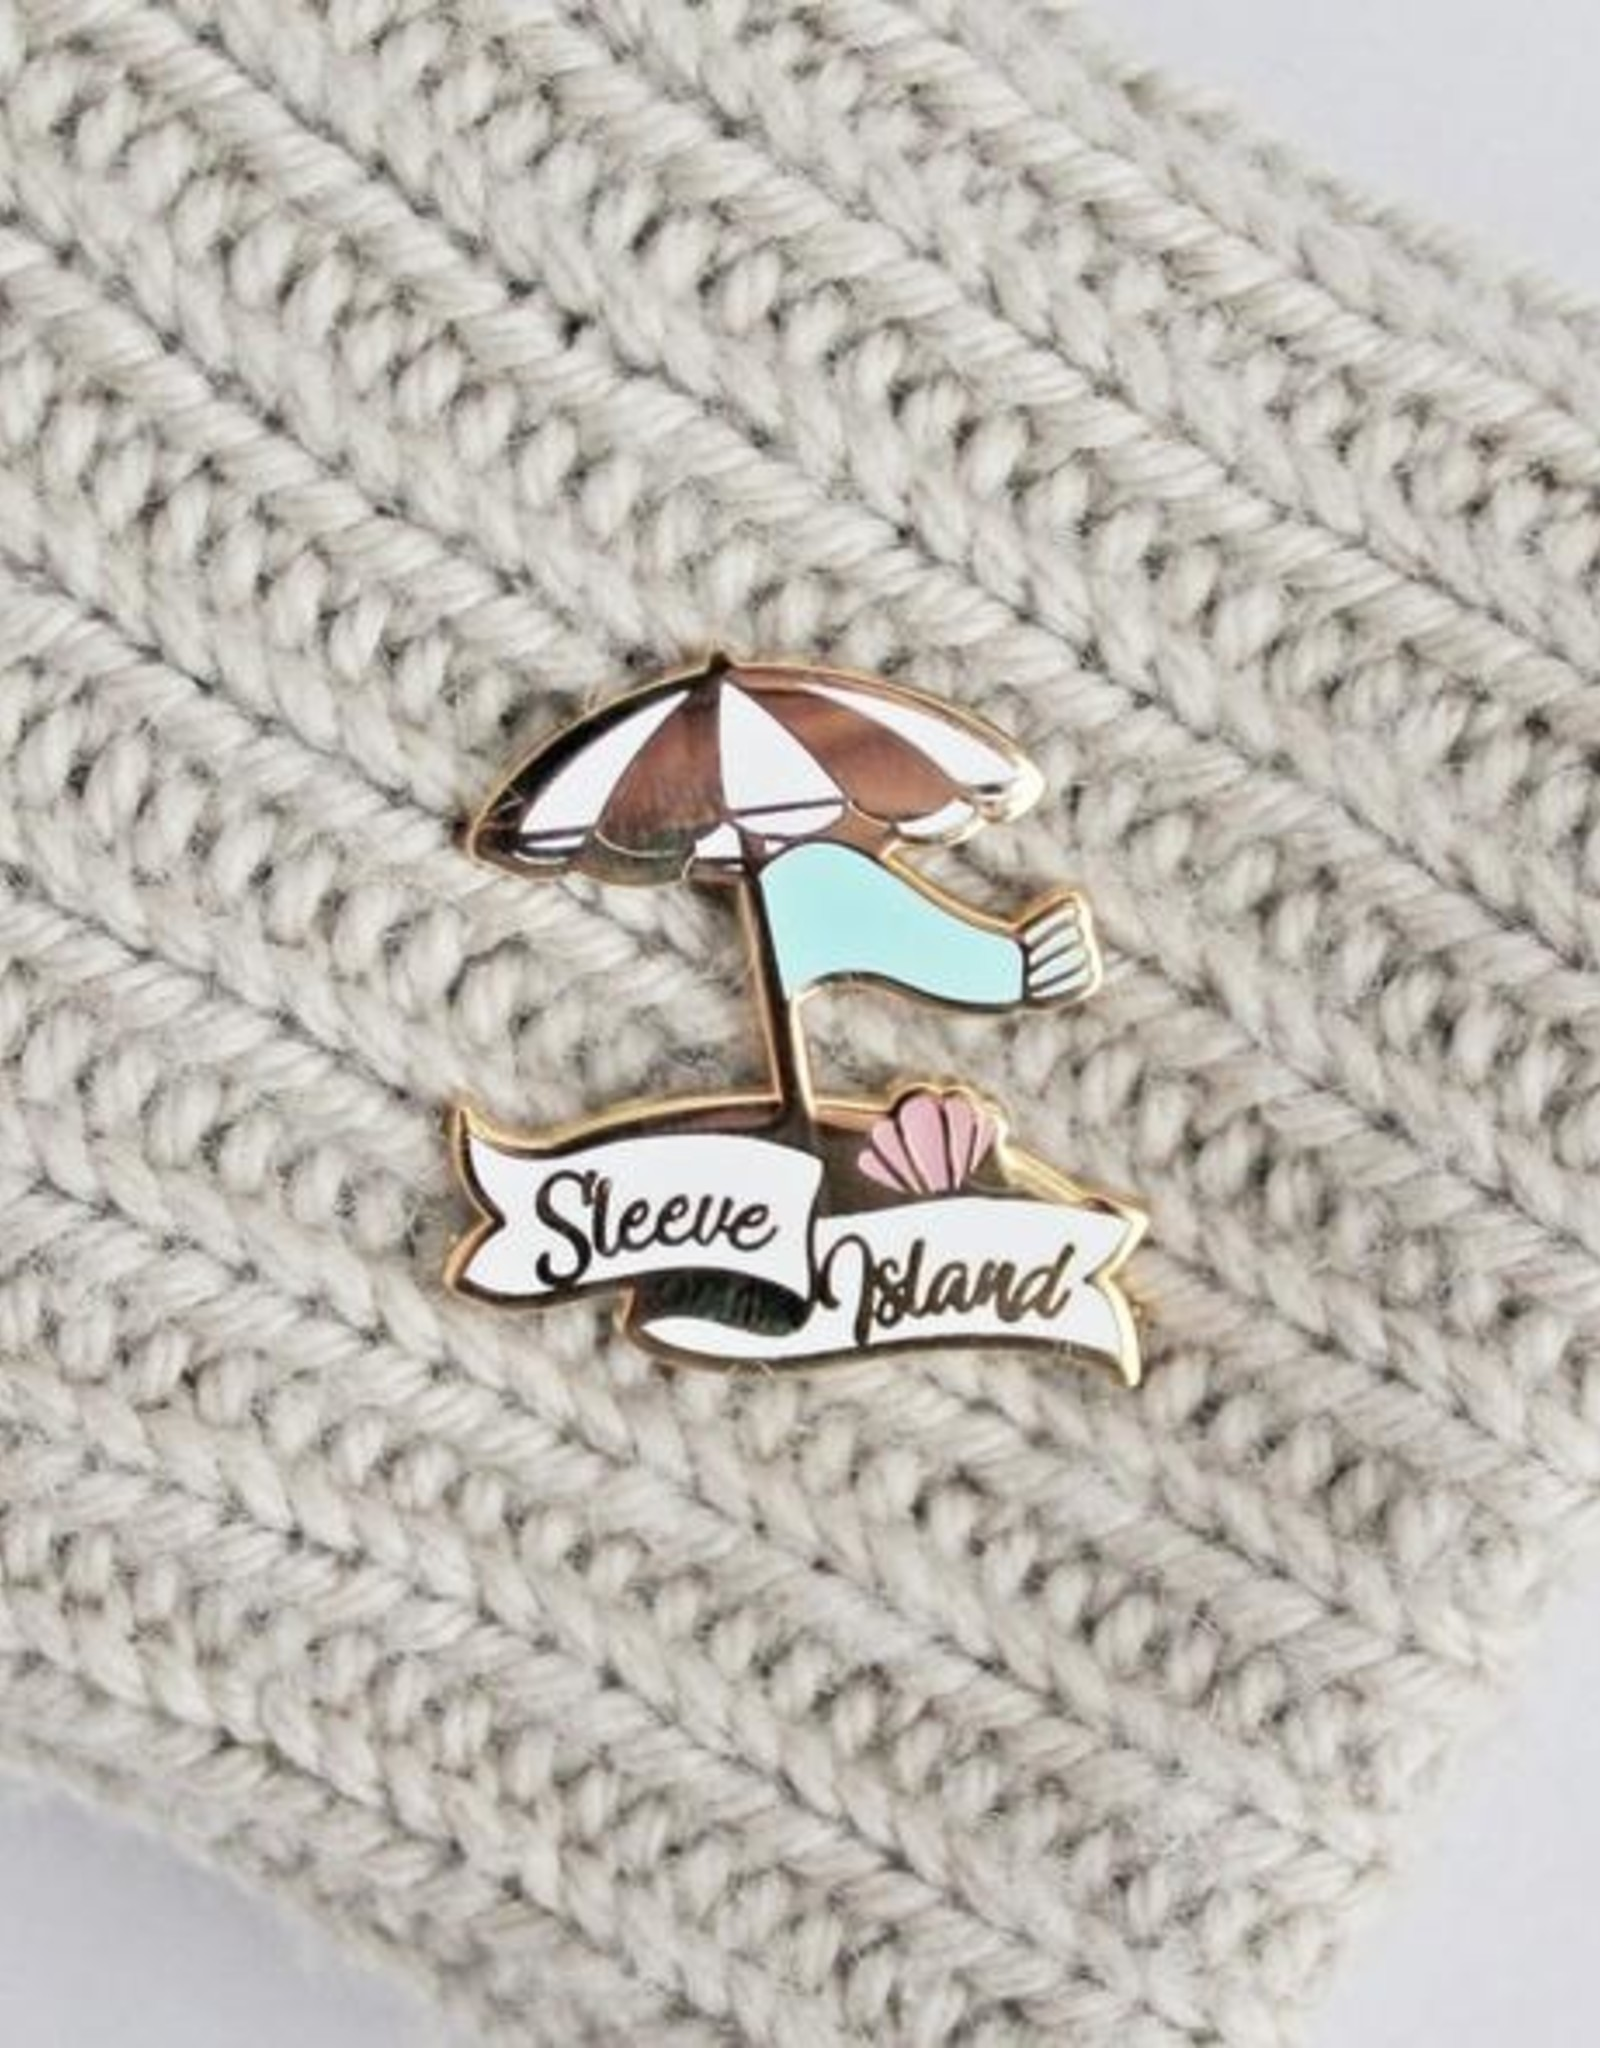 Twill&Print Sleeve Island Enamel Pin